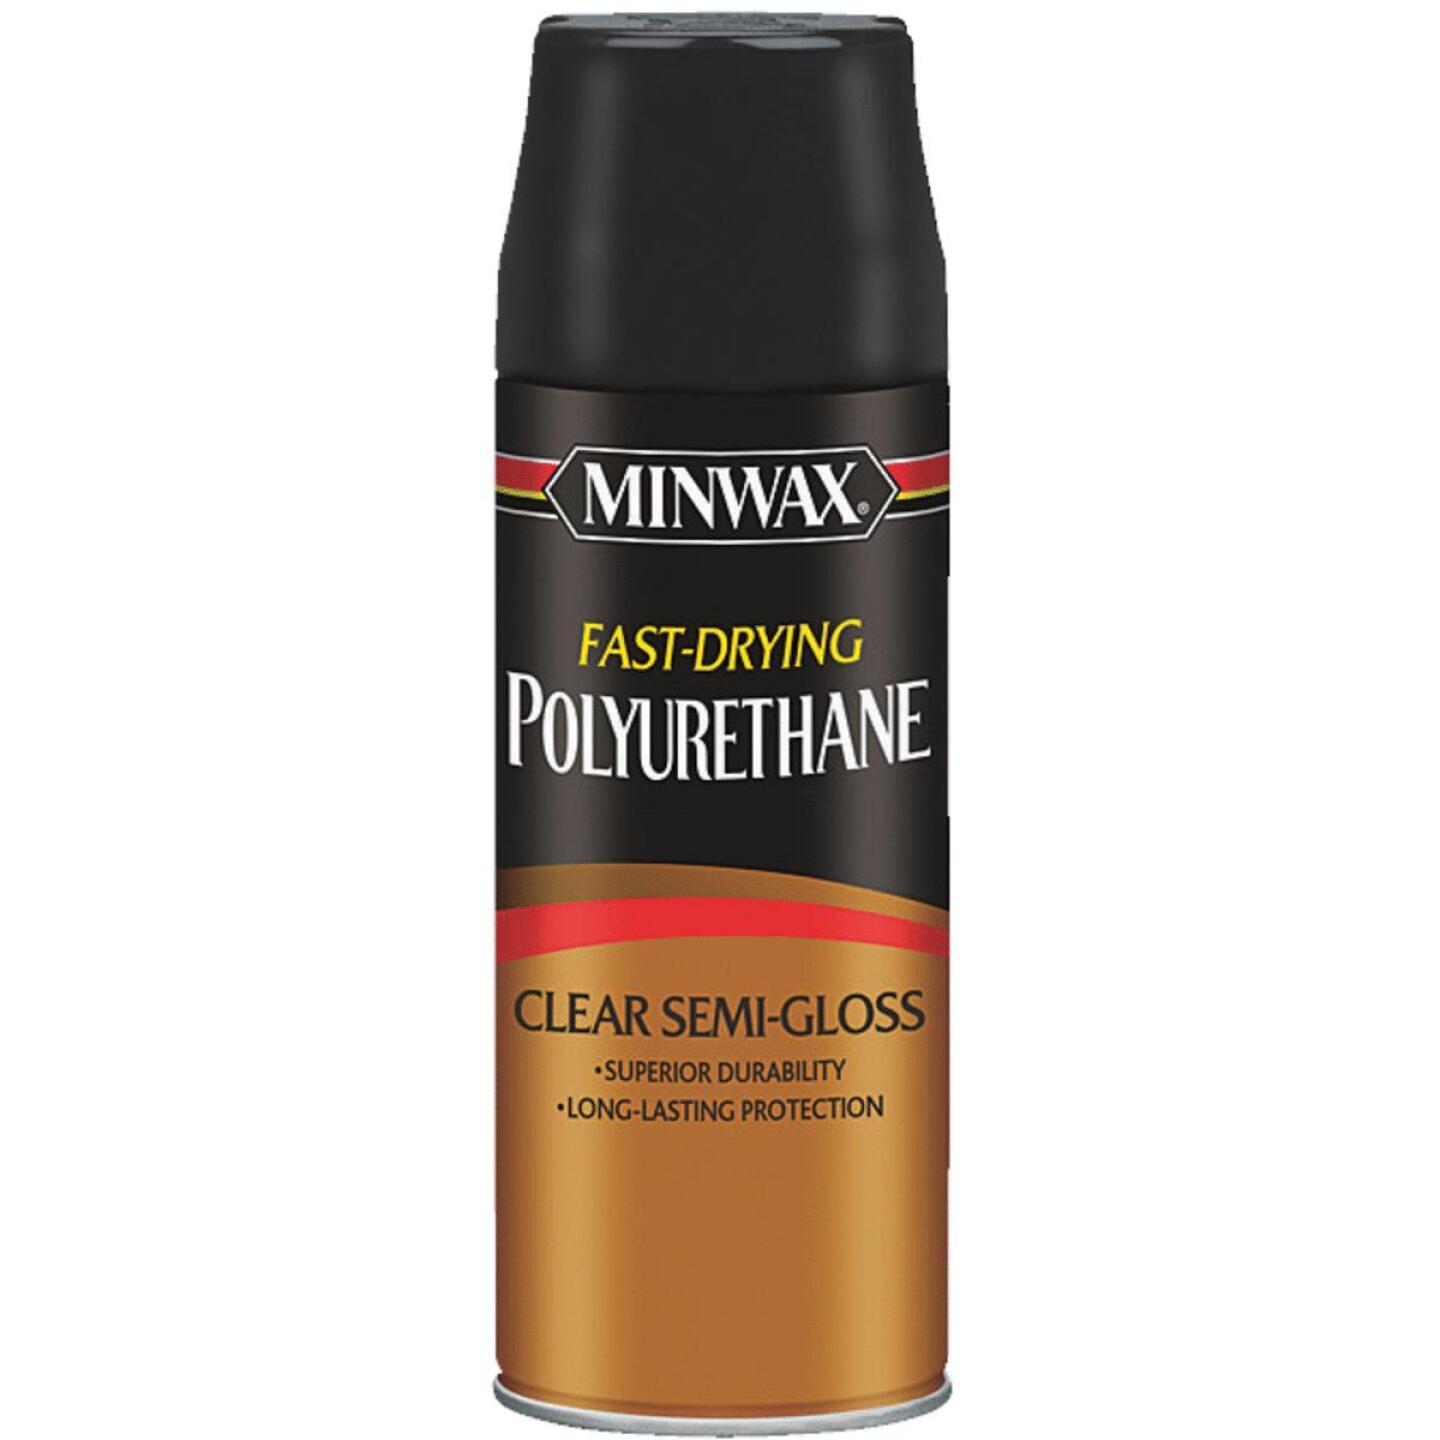 Minwax Semi-Gloss Clear Spray Polyurethane, 11.5 Oz. Image 1